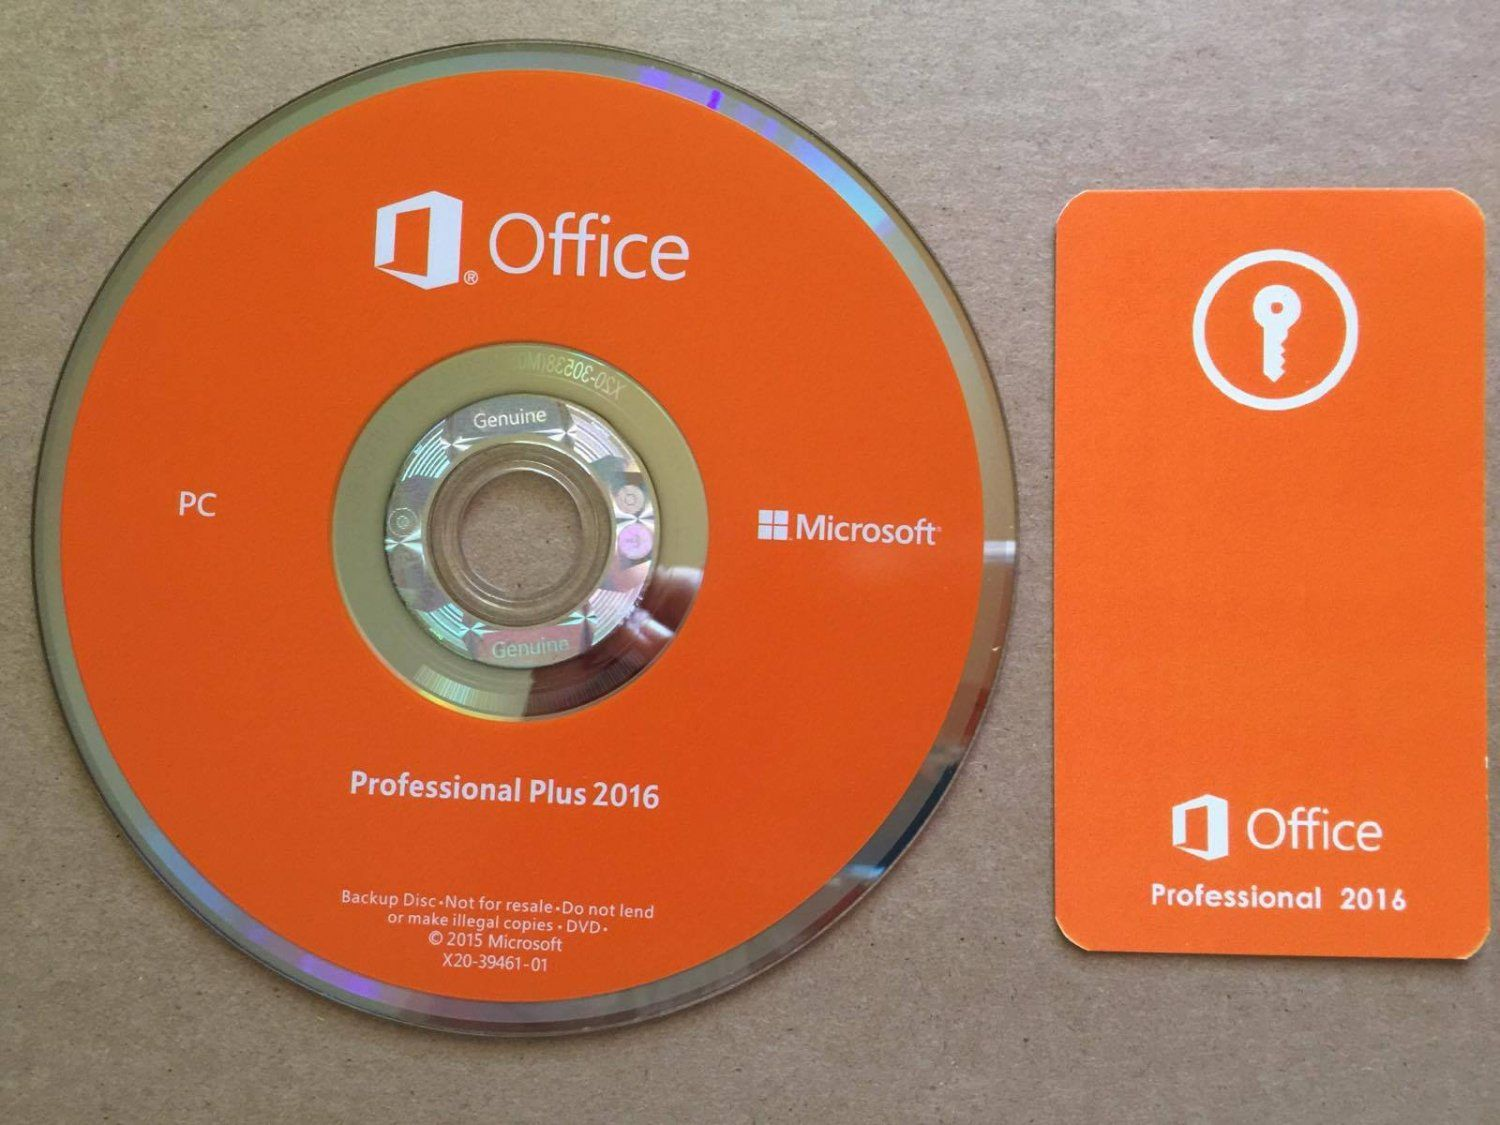 office 2016 dvd image